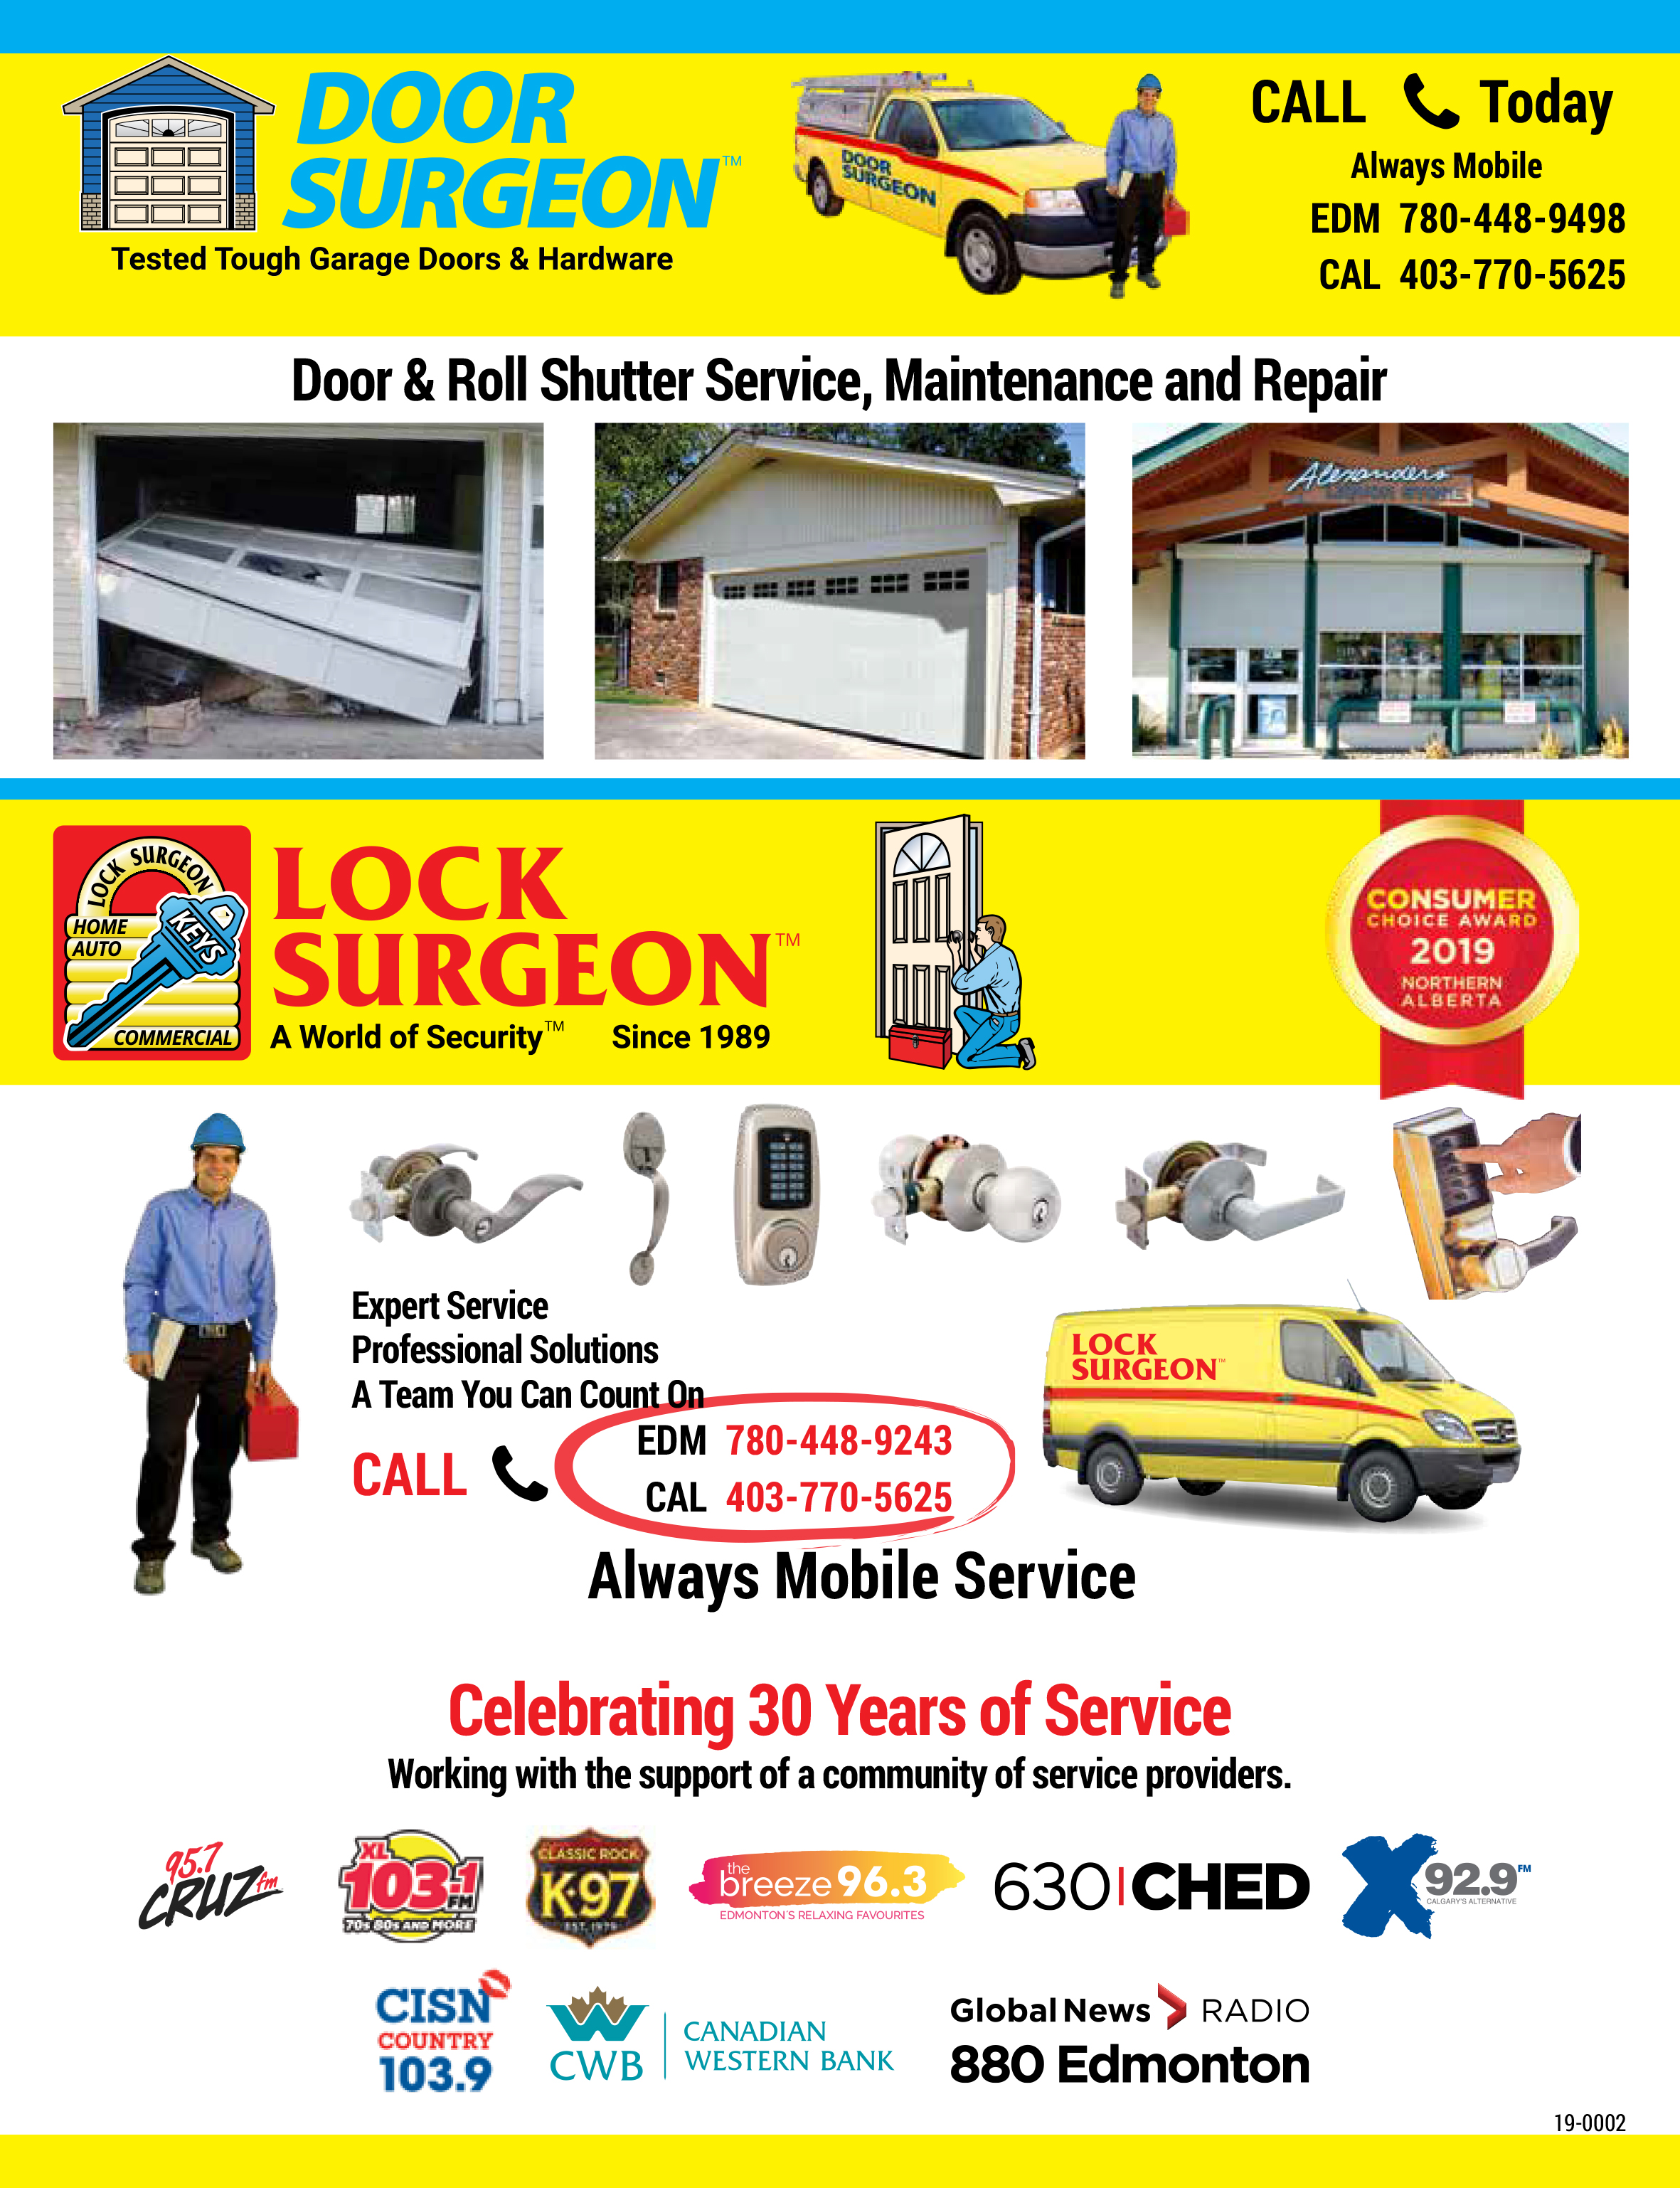 Avoid garage door damage, glass break-ins, hardware breakdown and unnecessary service costs by doing garage door service, garage door opener service and roll shutter service on a regular basis.